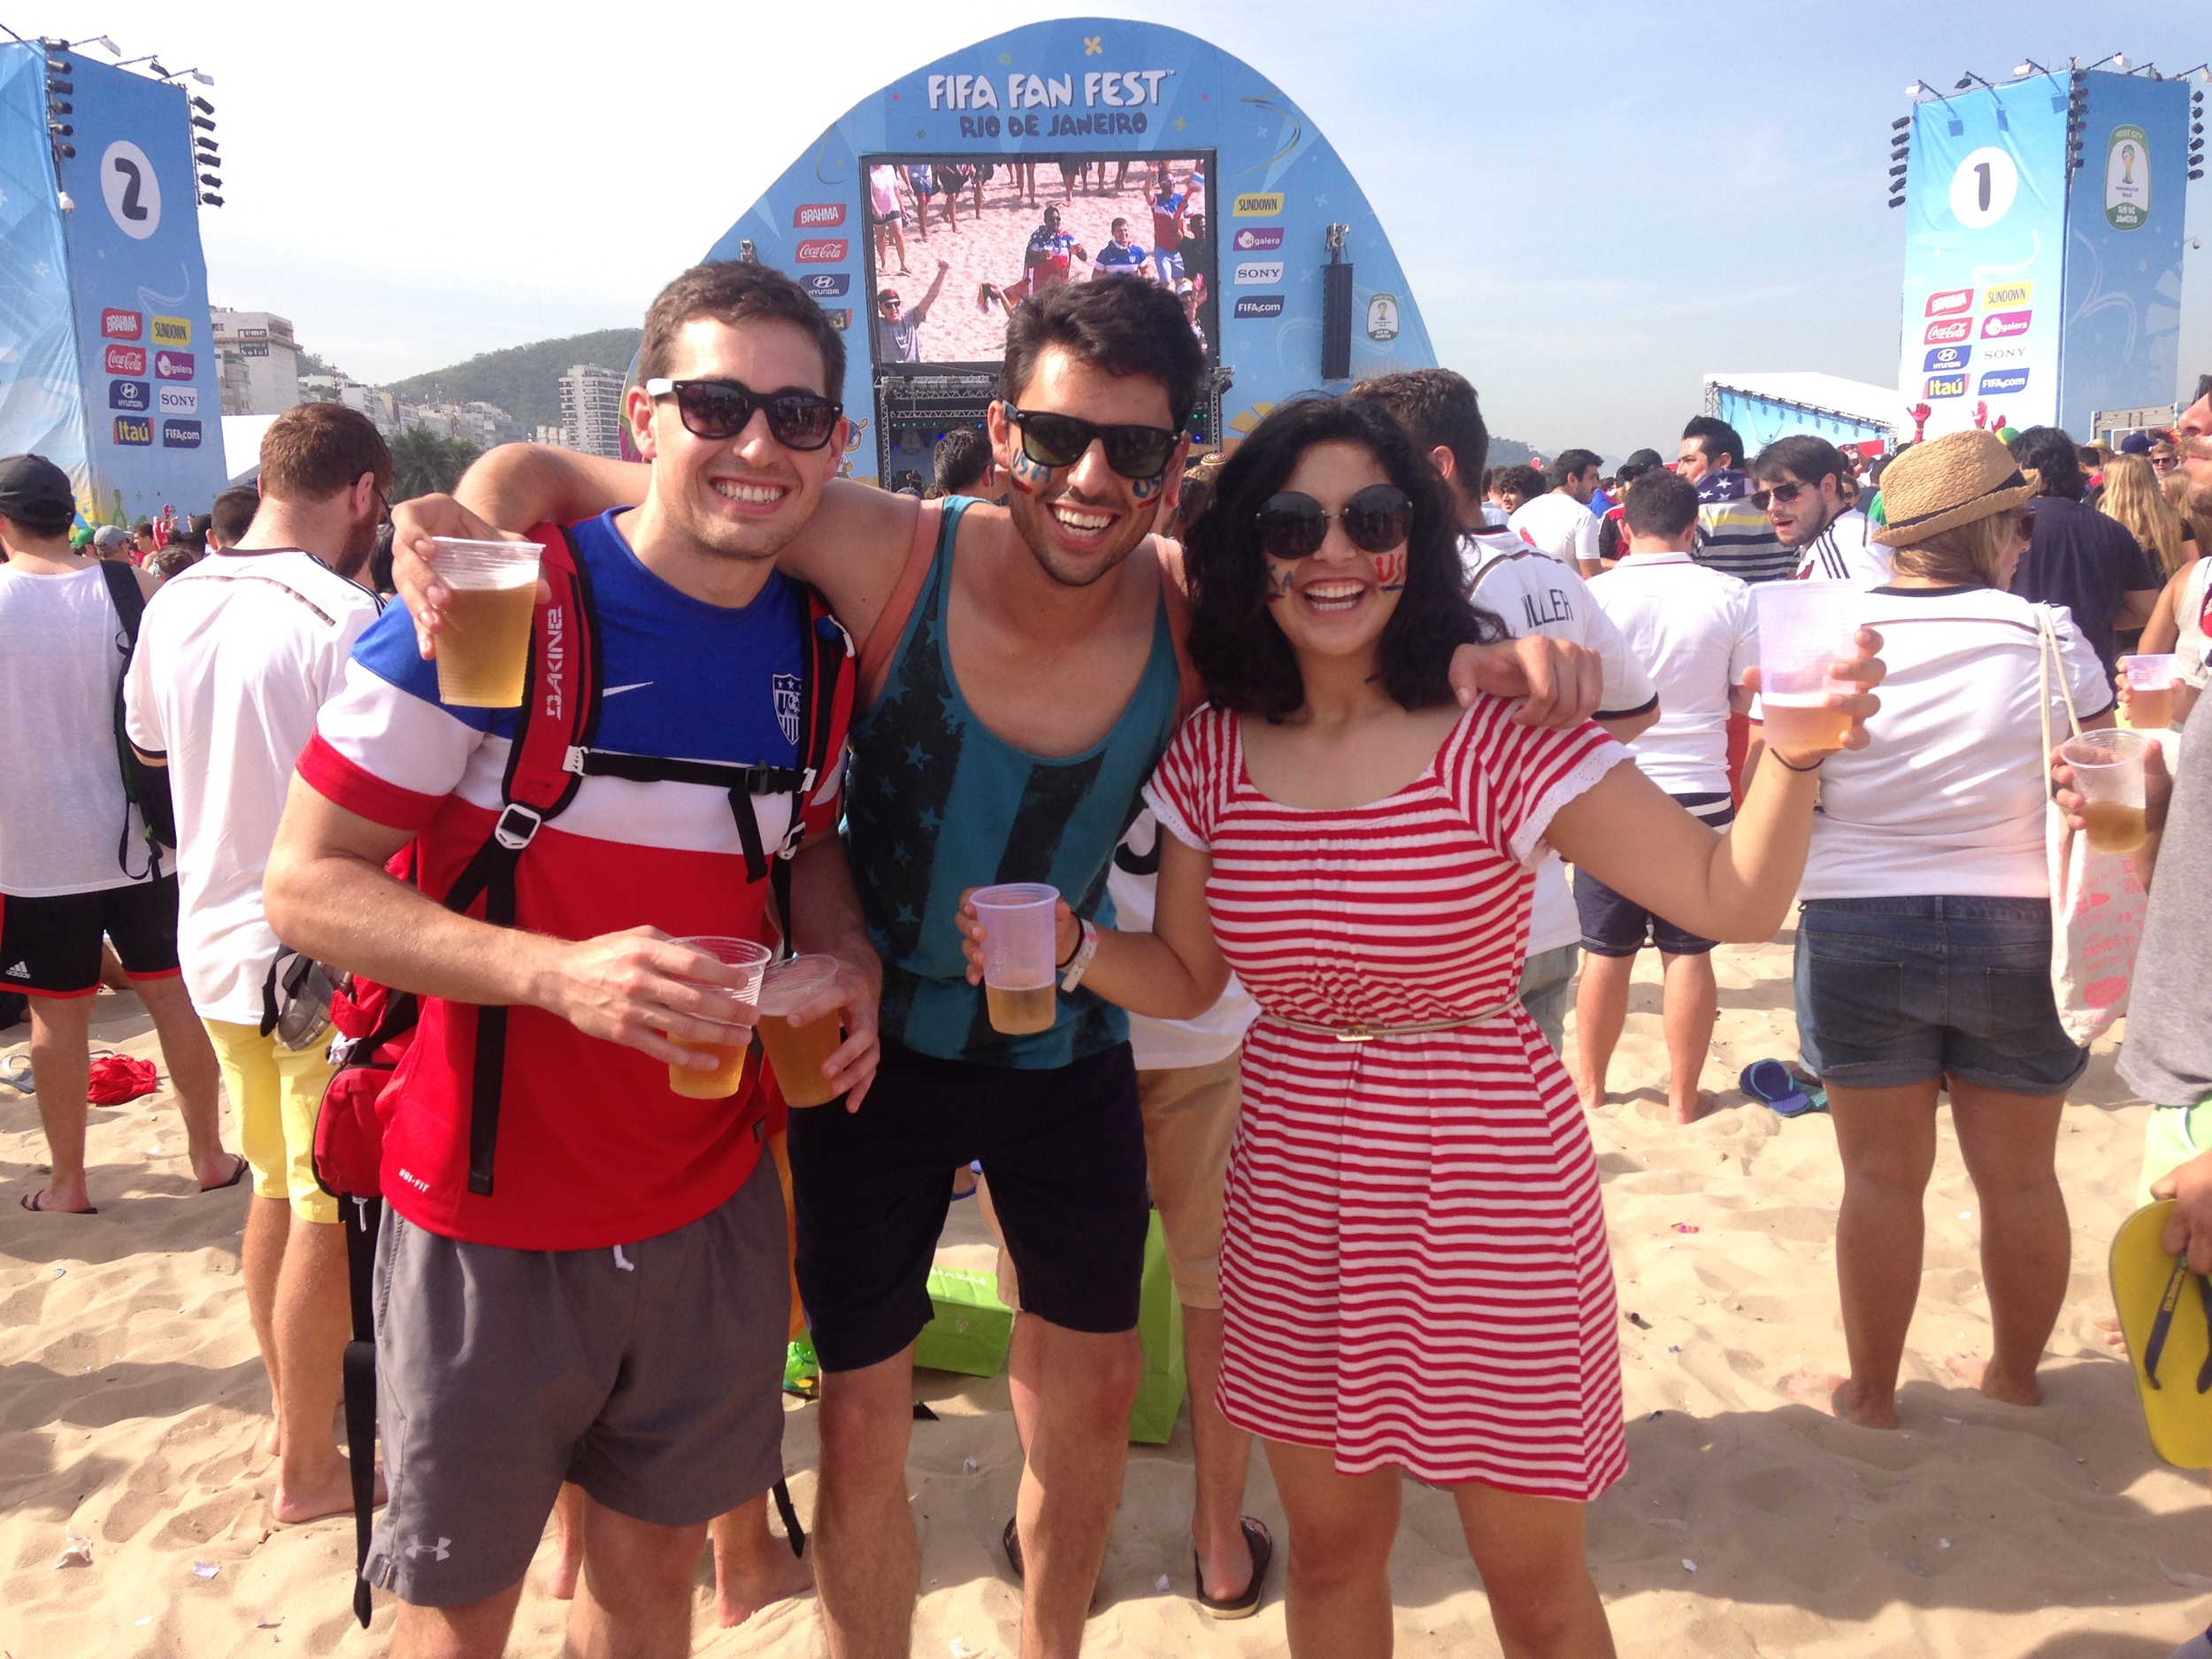 USA vs Germany game! On the beaches of Copacabana!